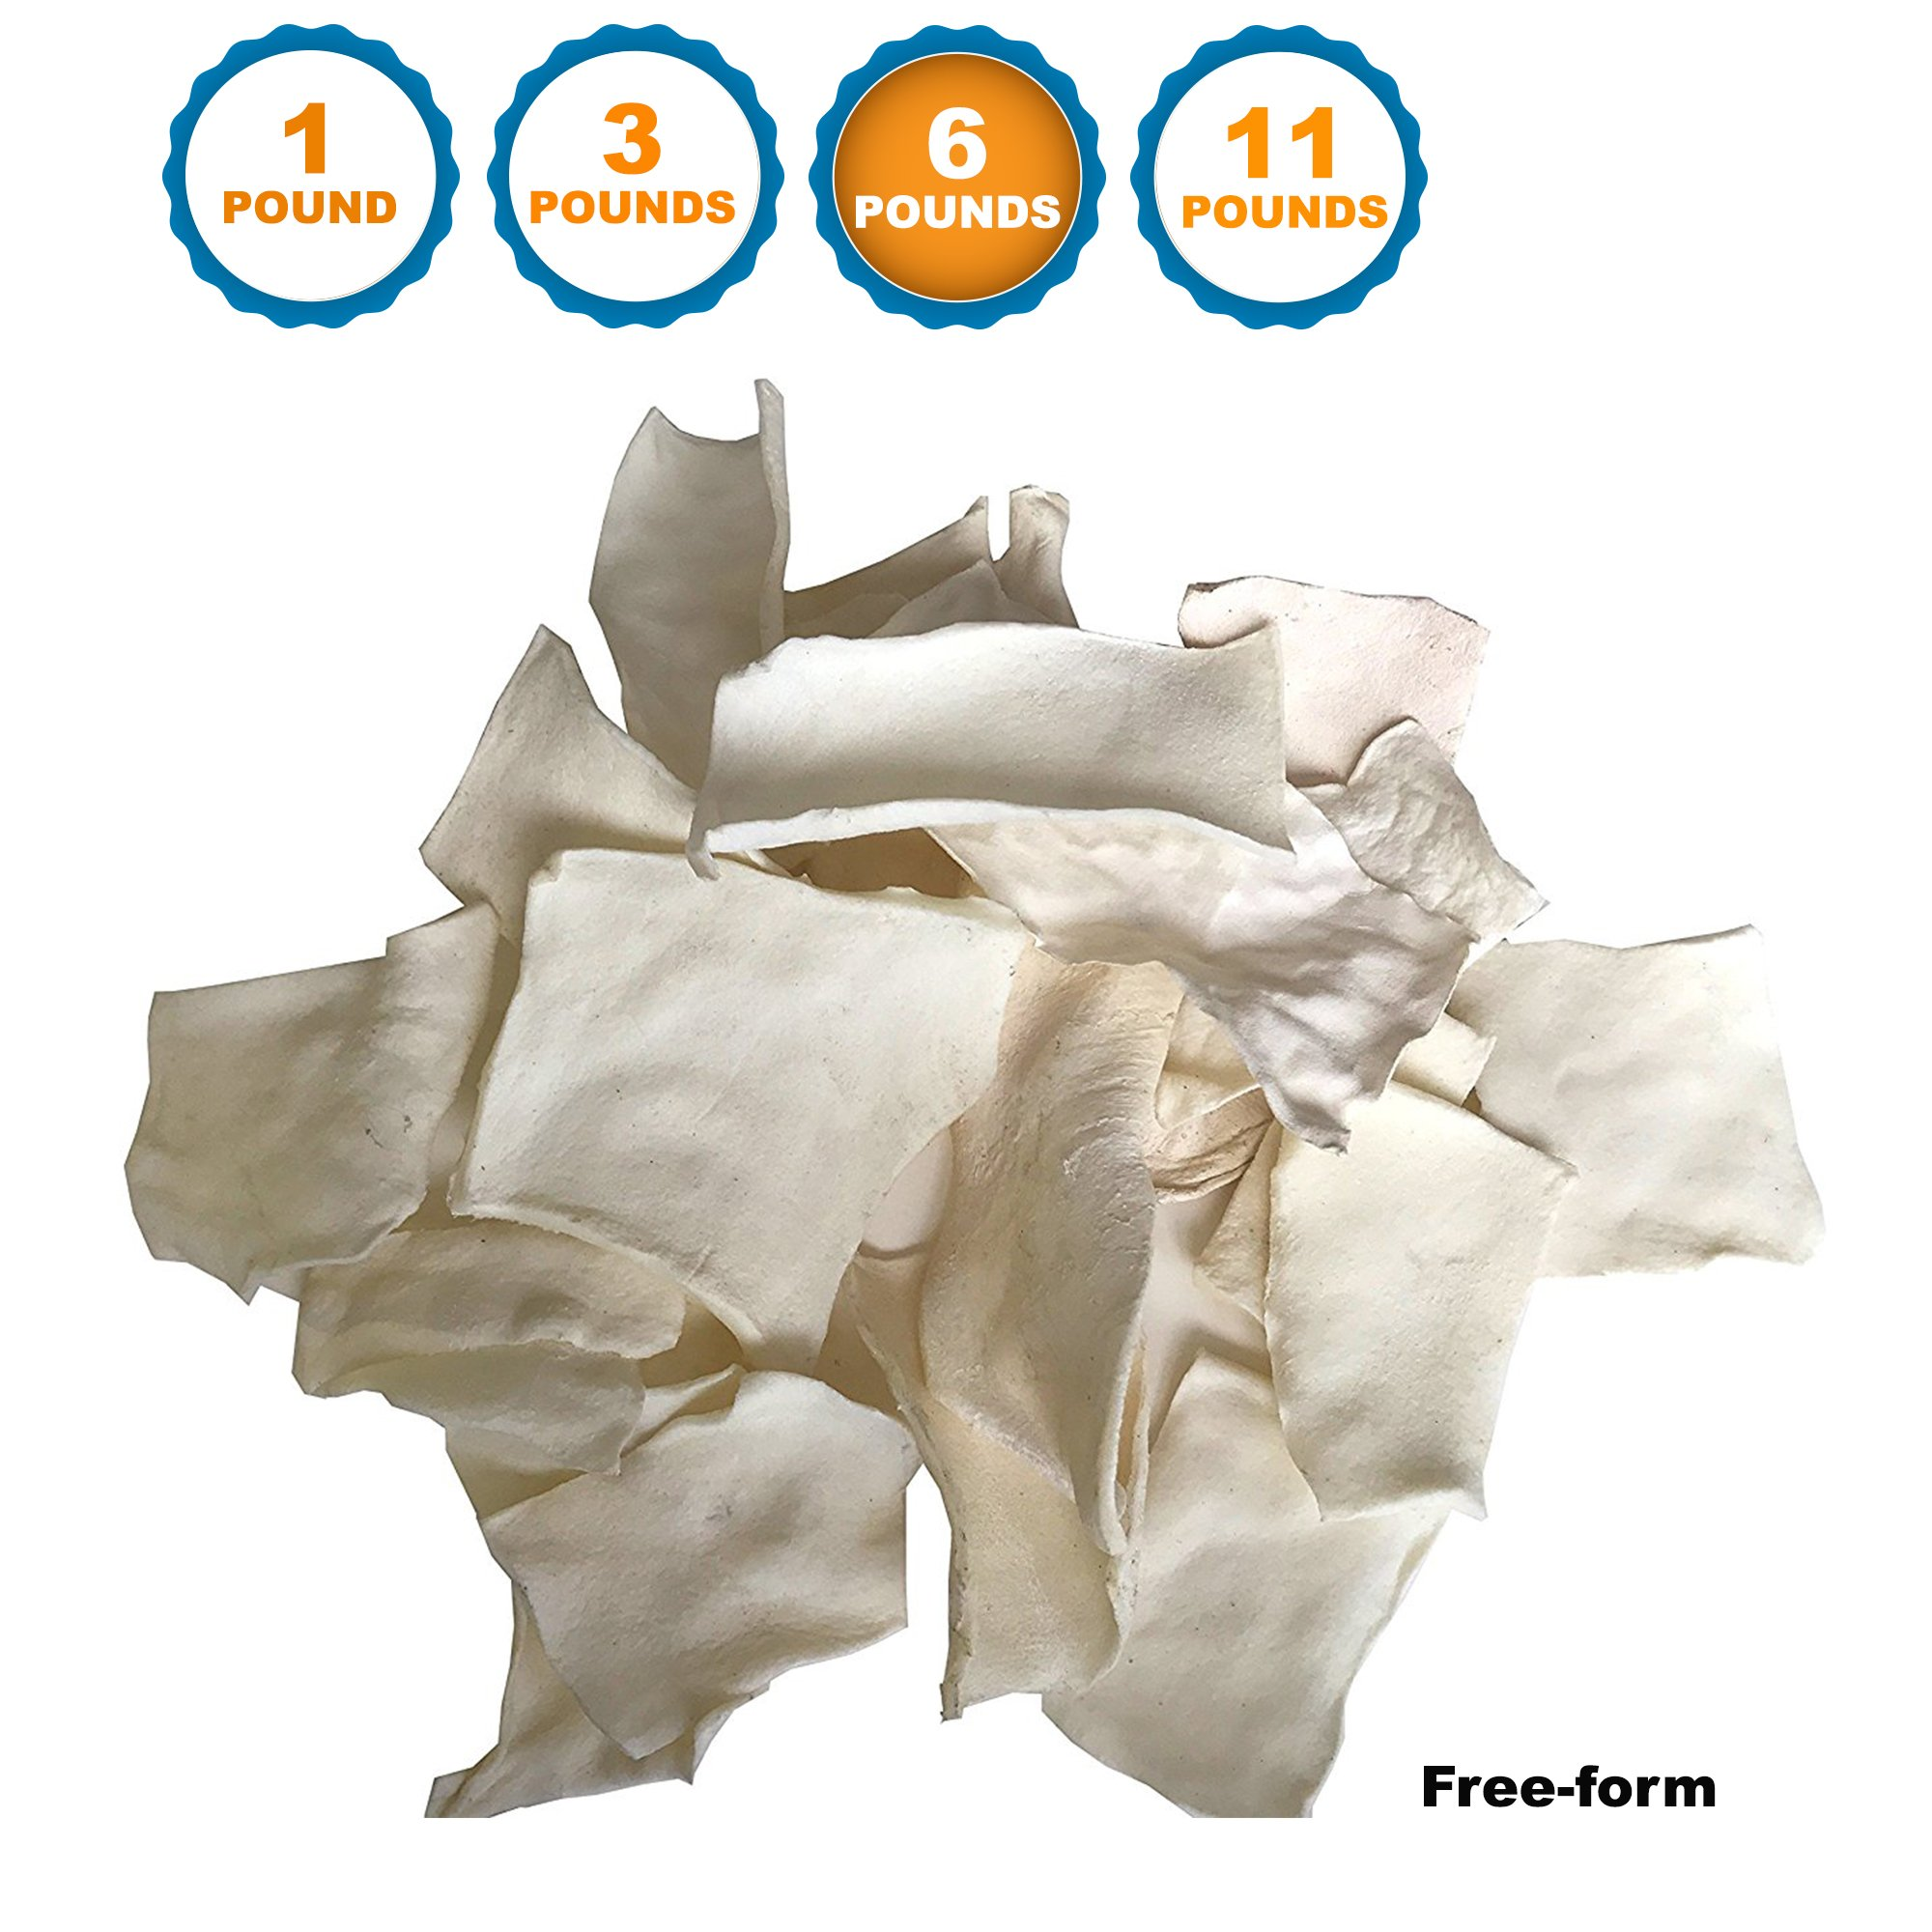 123 Treats - Free-form Rawhide Chips for Dogs (6 LB) Beef Hide Dog Chews Packed in the USA